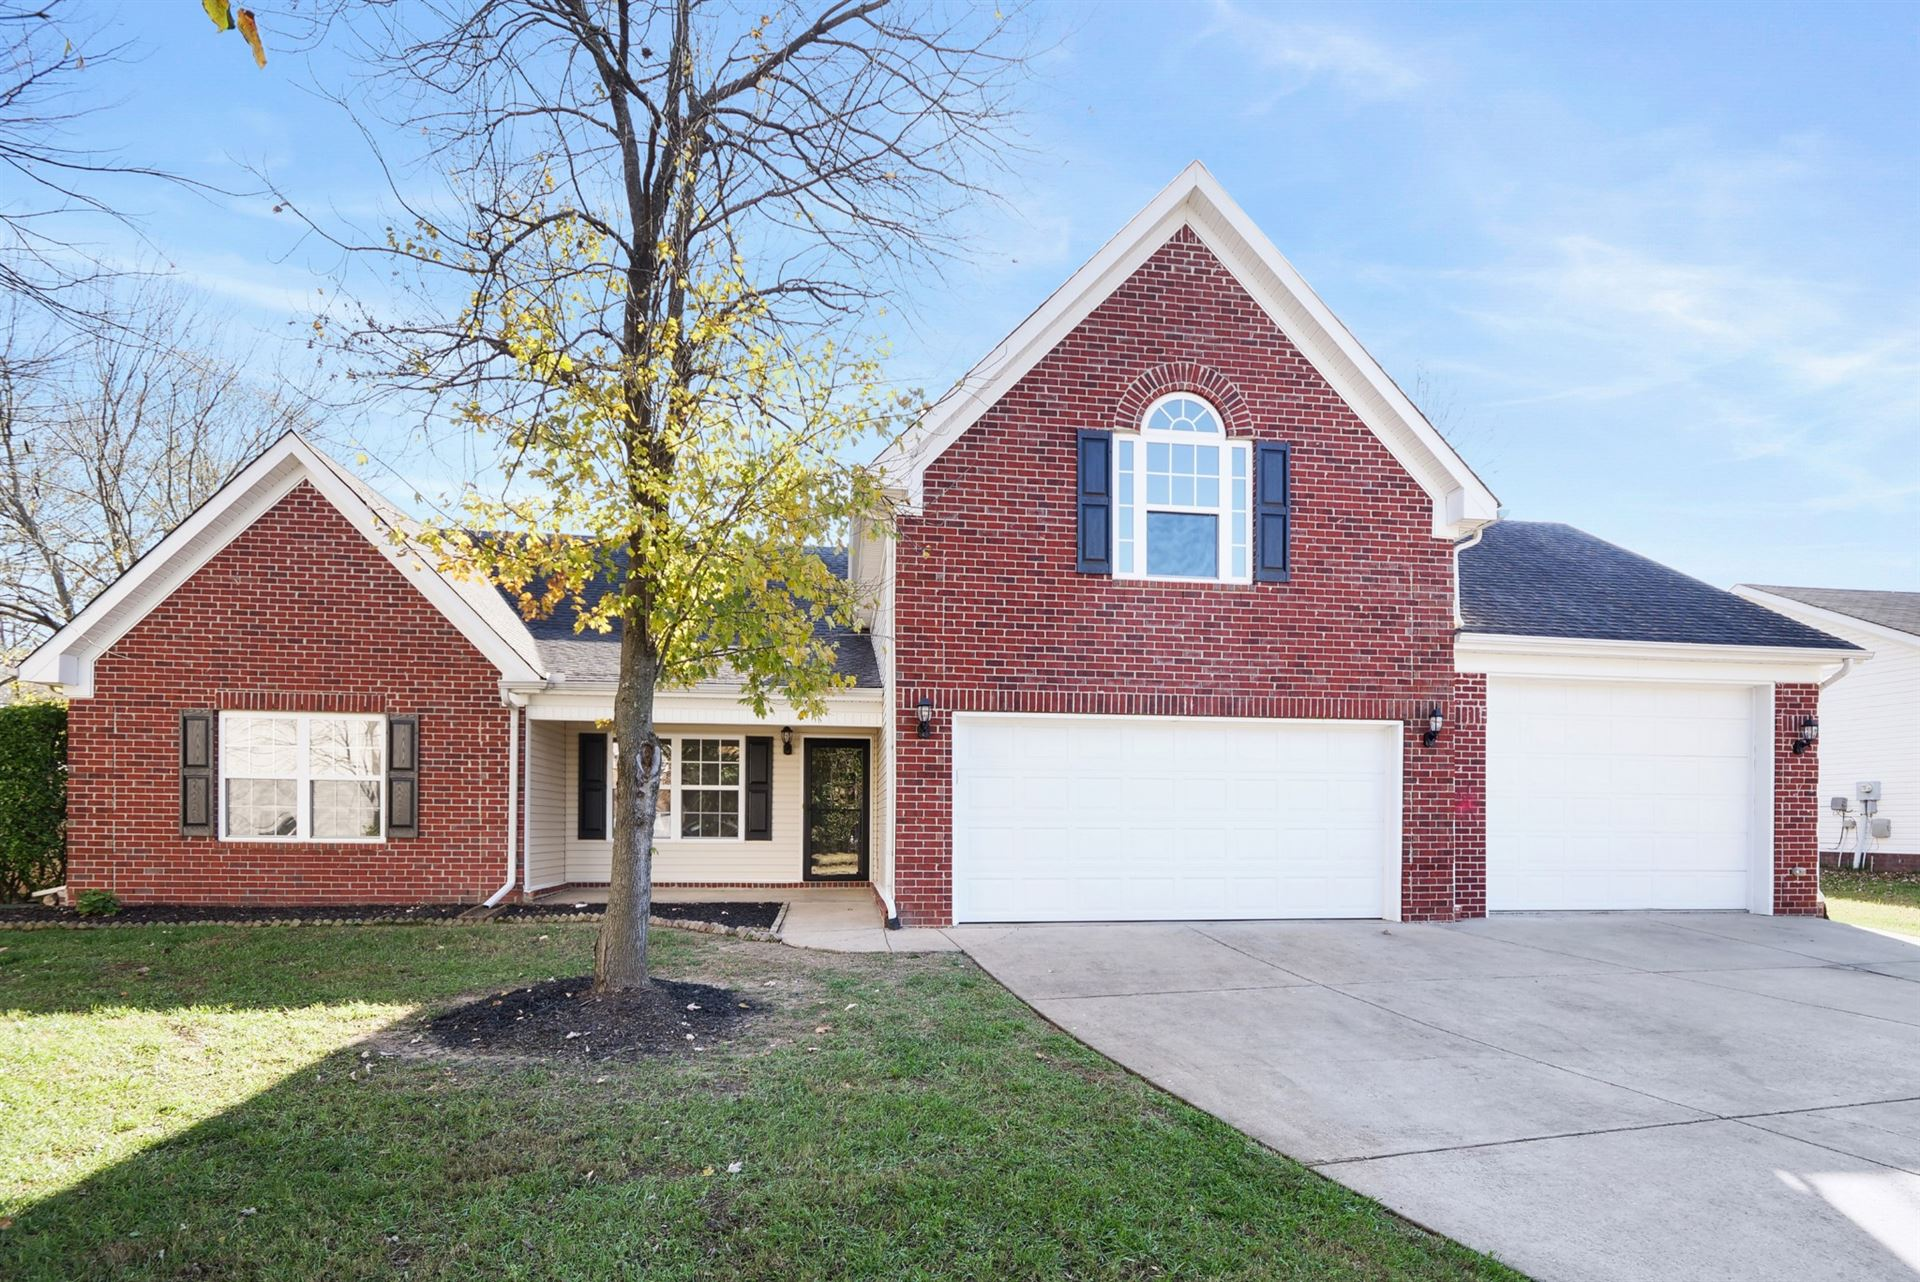 Photo of 1814 Packard Ct, Spring Hill, TN 37174 (MLS # 2209547)